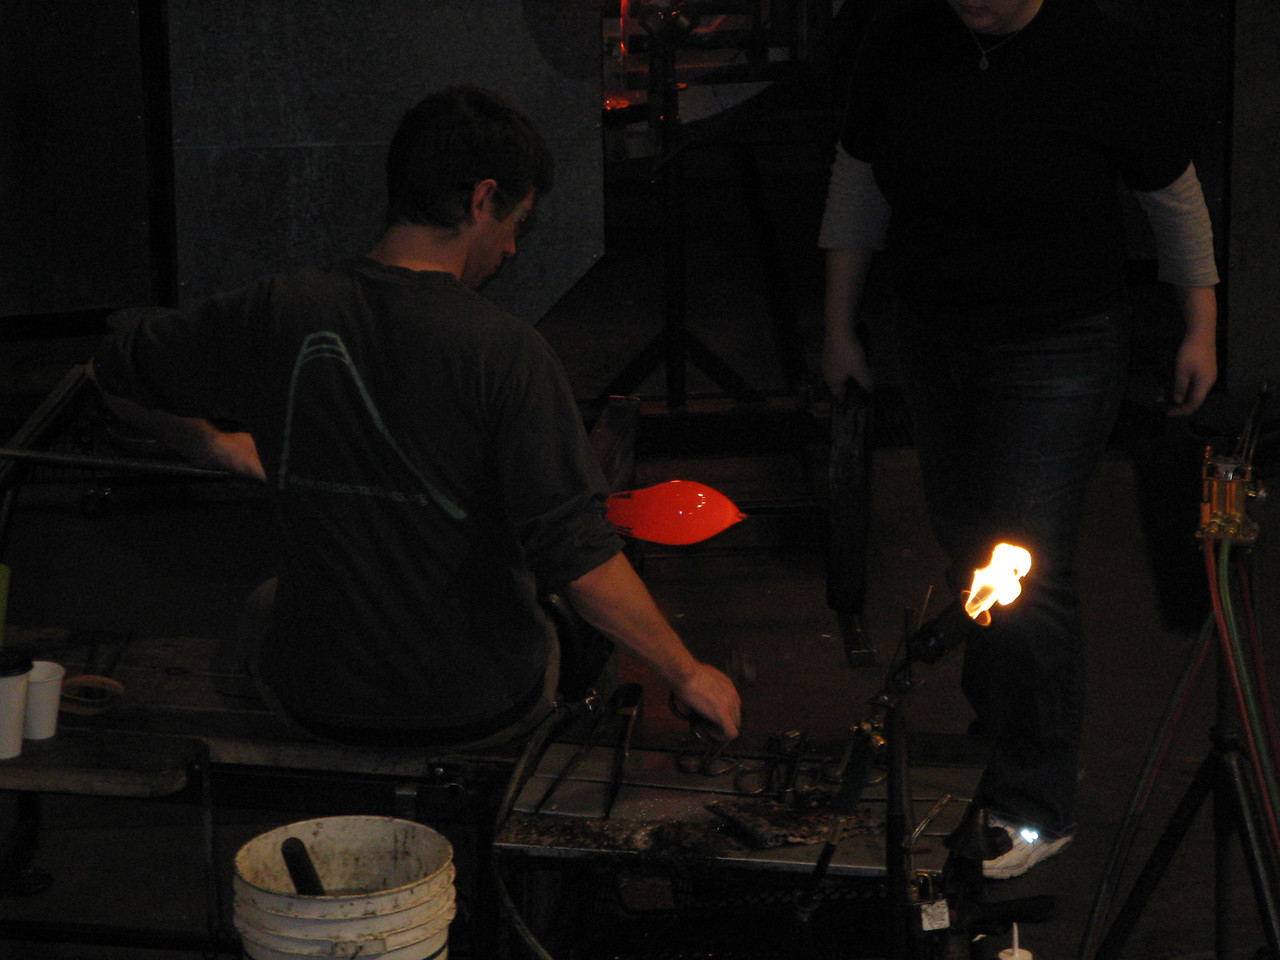 A glass artist is forming a red hot piece of glass into a work of art.